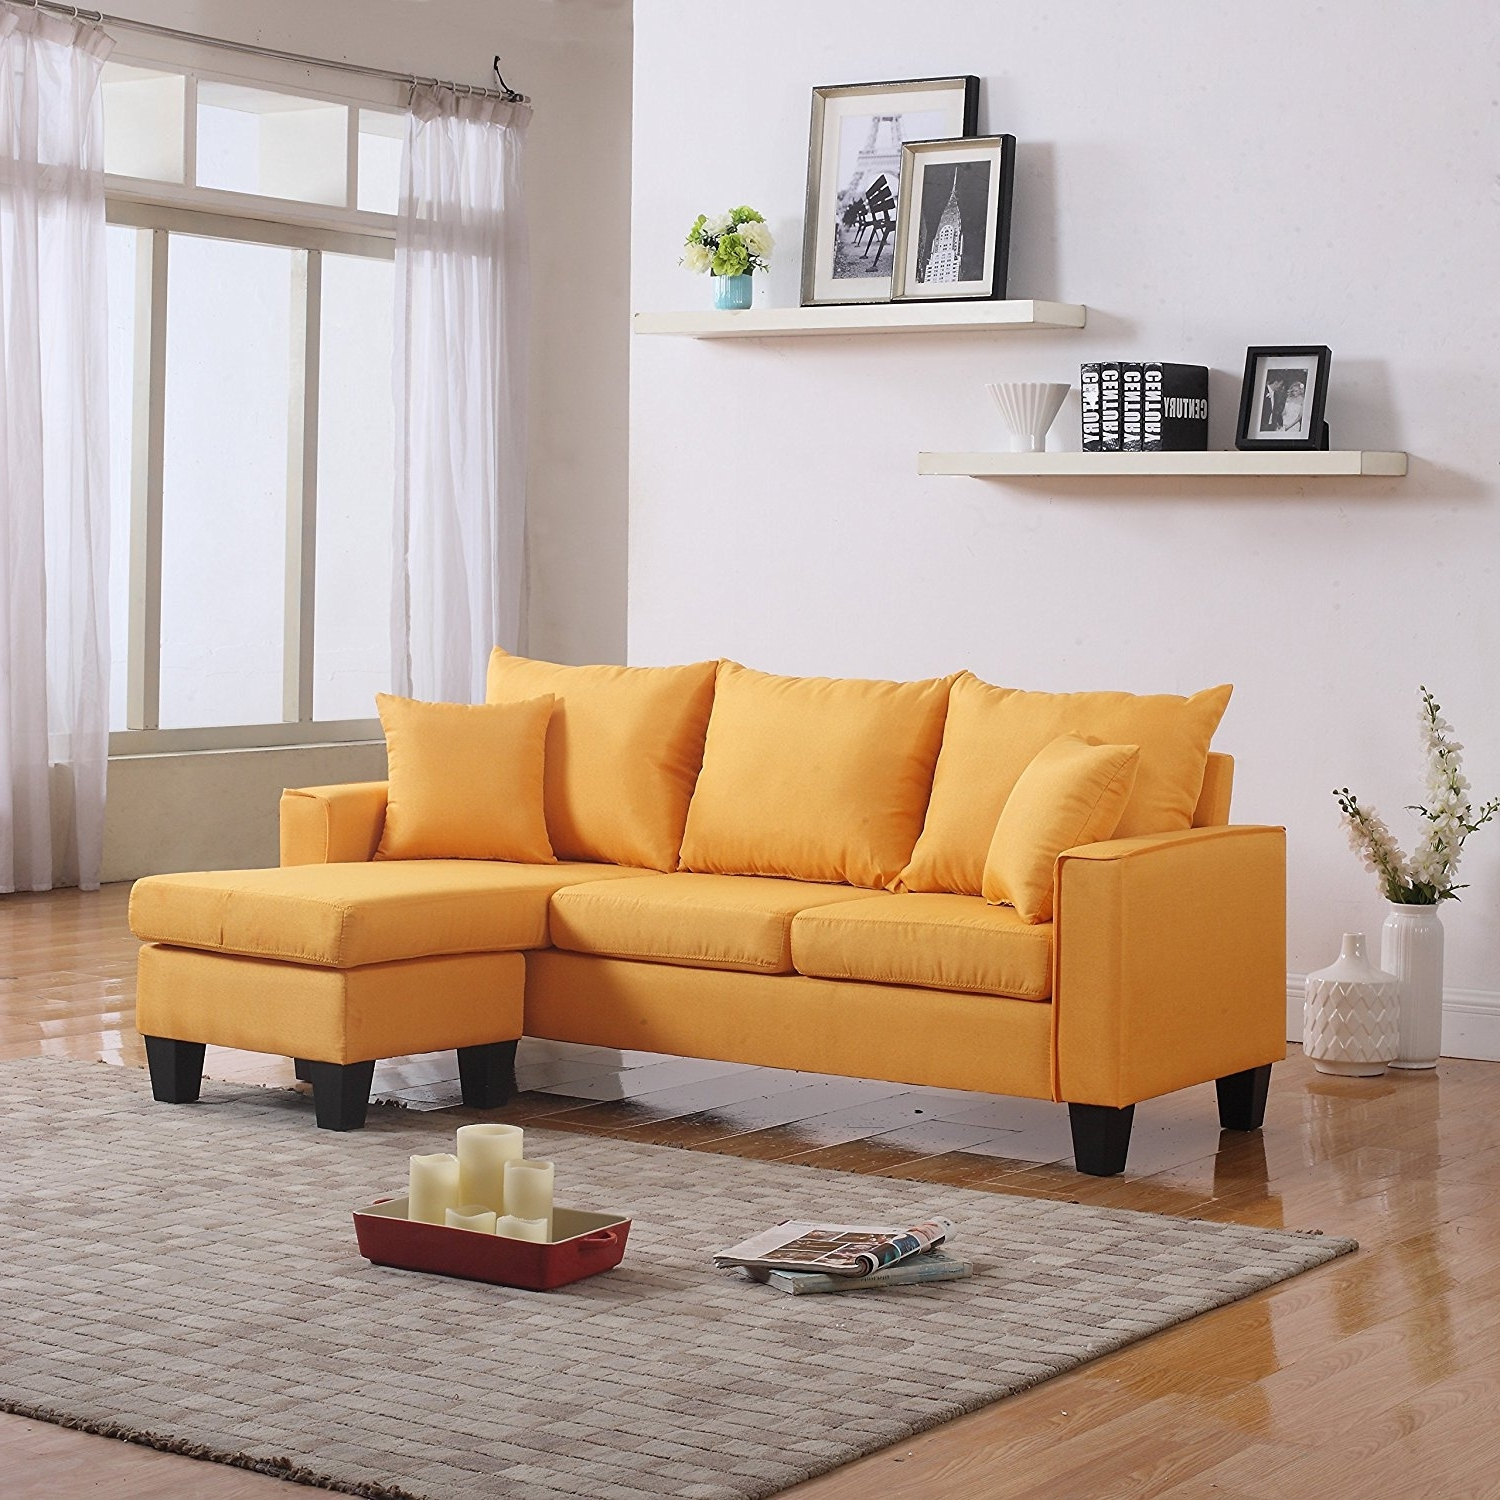 Modern Sectional Sofas For Small Spaces Pertaining To Favorite Amazon: Modern Linen Fabric Small Space Sectional Sofa With (View 9 of 15)